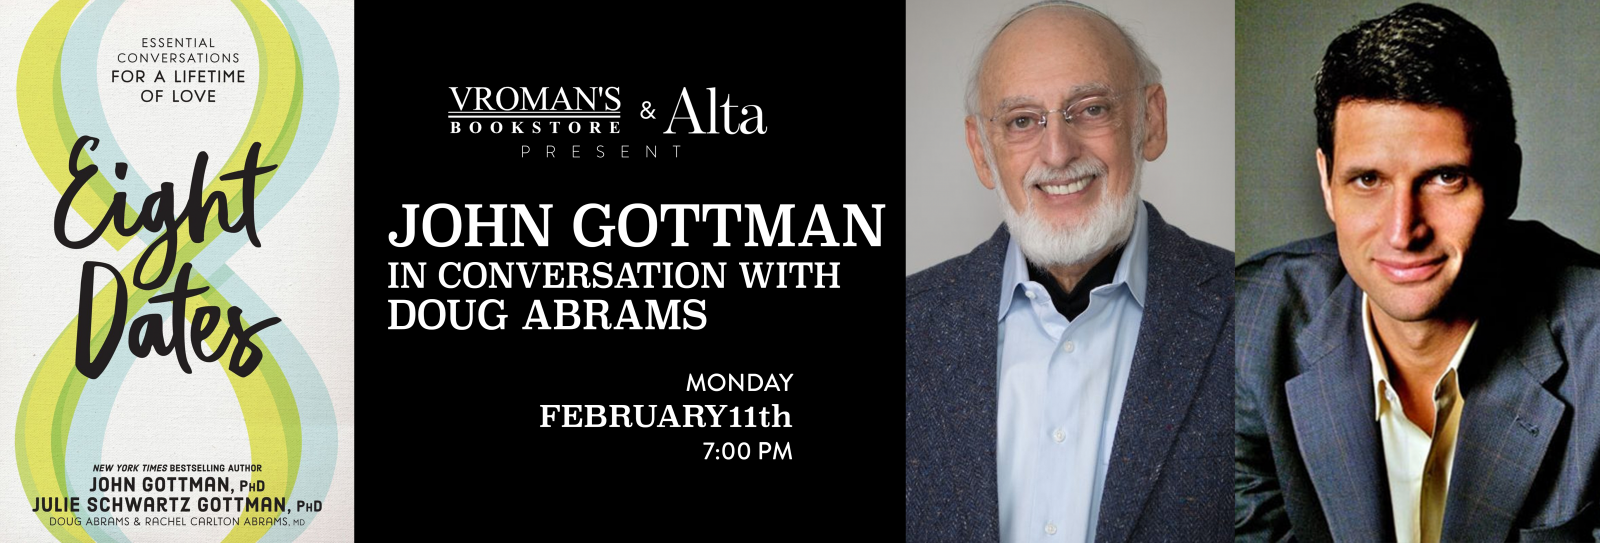 Dr. John Gottman, in conversation with Doug Abrams, Monday February 11th at 7pm